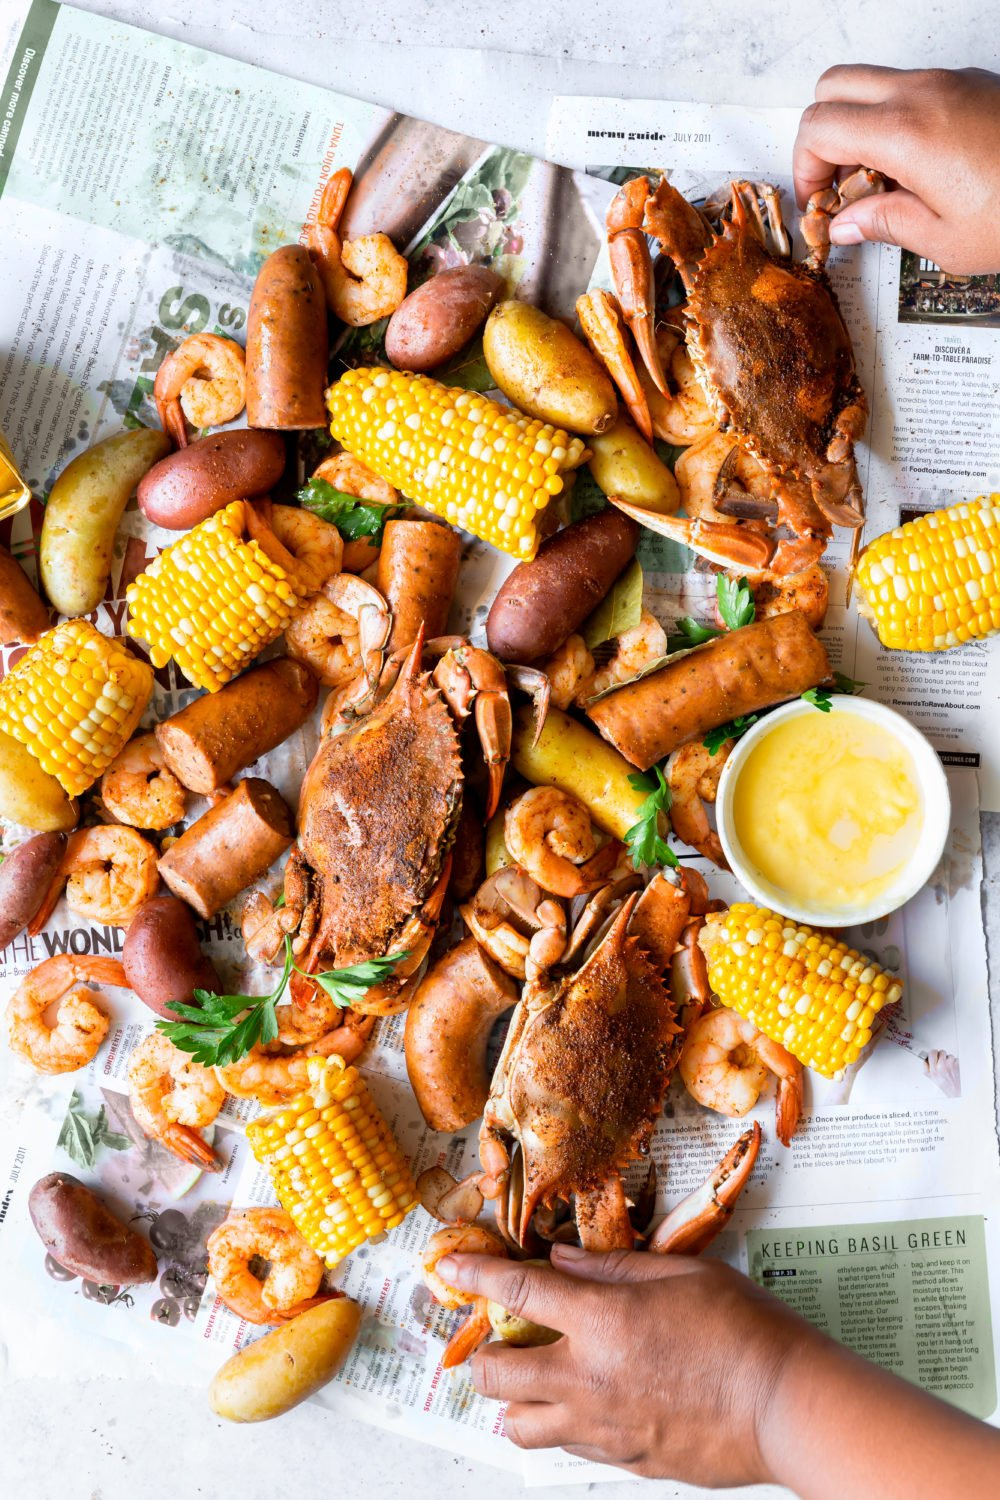 Frogmore Stew Low Country Boil Recipe 3 e1564326297975 - The BEST Authentic Frogmore Stew (Low Country Boil Recipe)